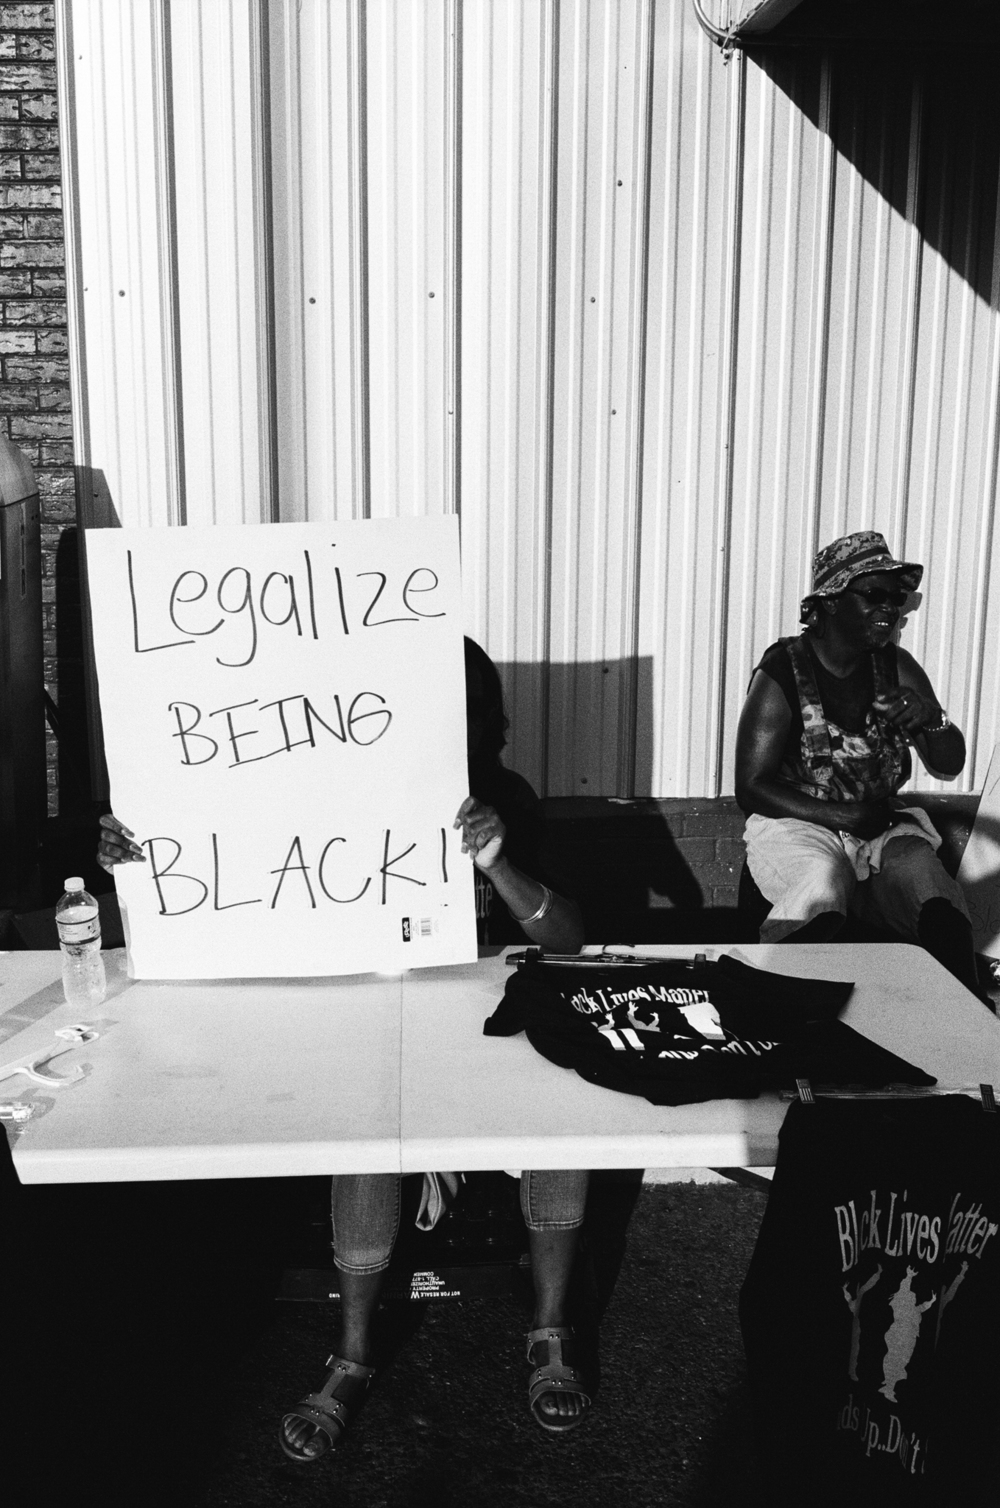 """Legalize being black!"" She hid behind the placard to avoid the sun, but her message remained."